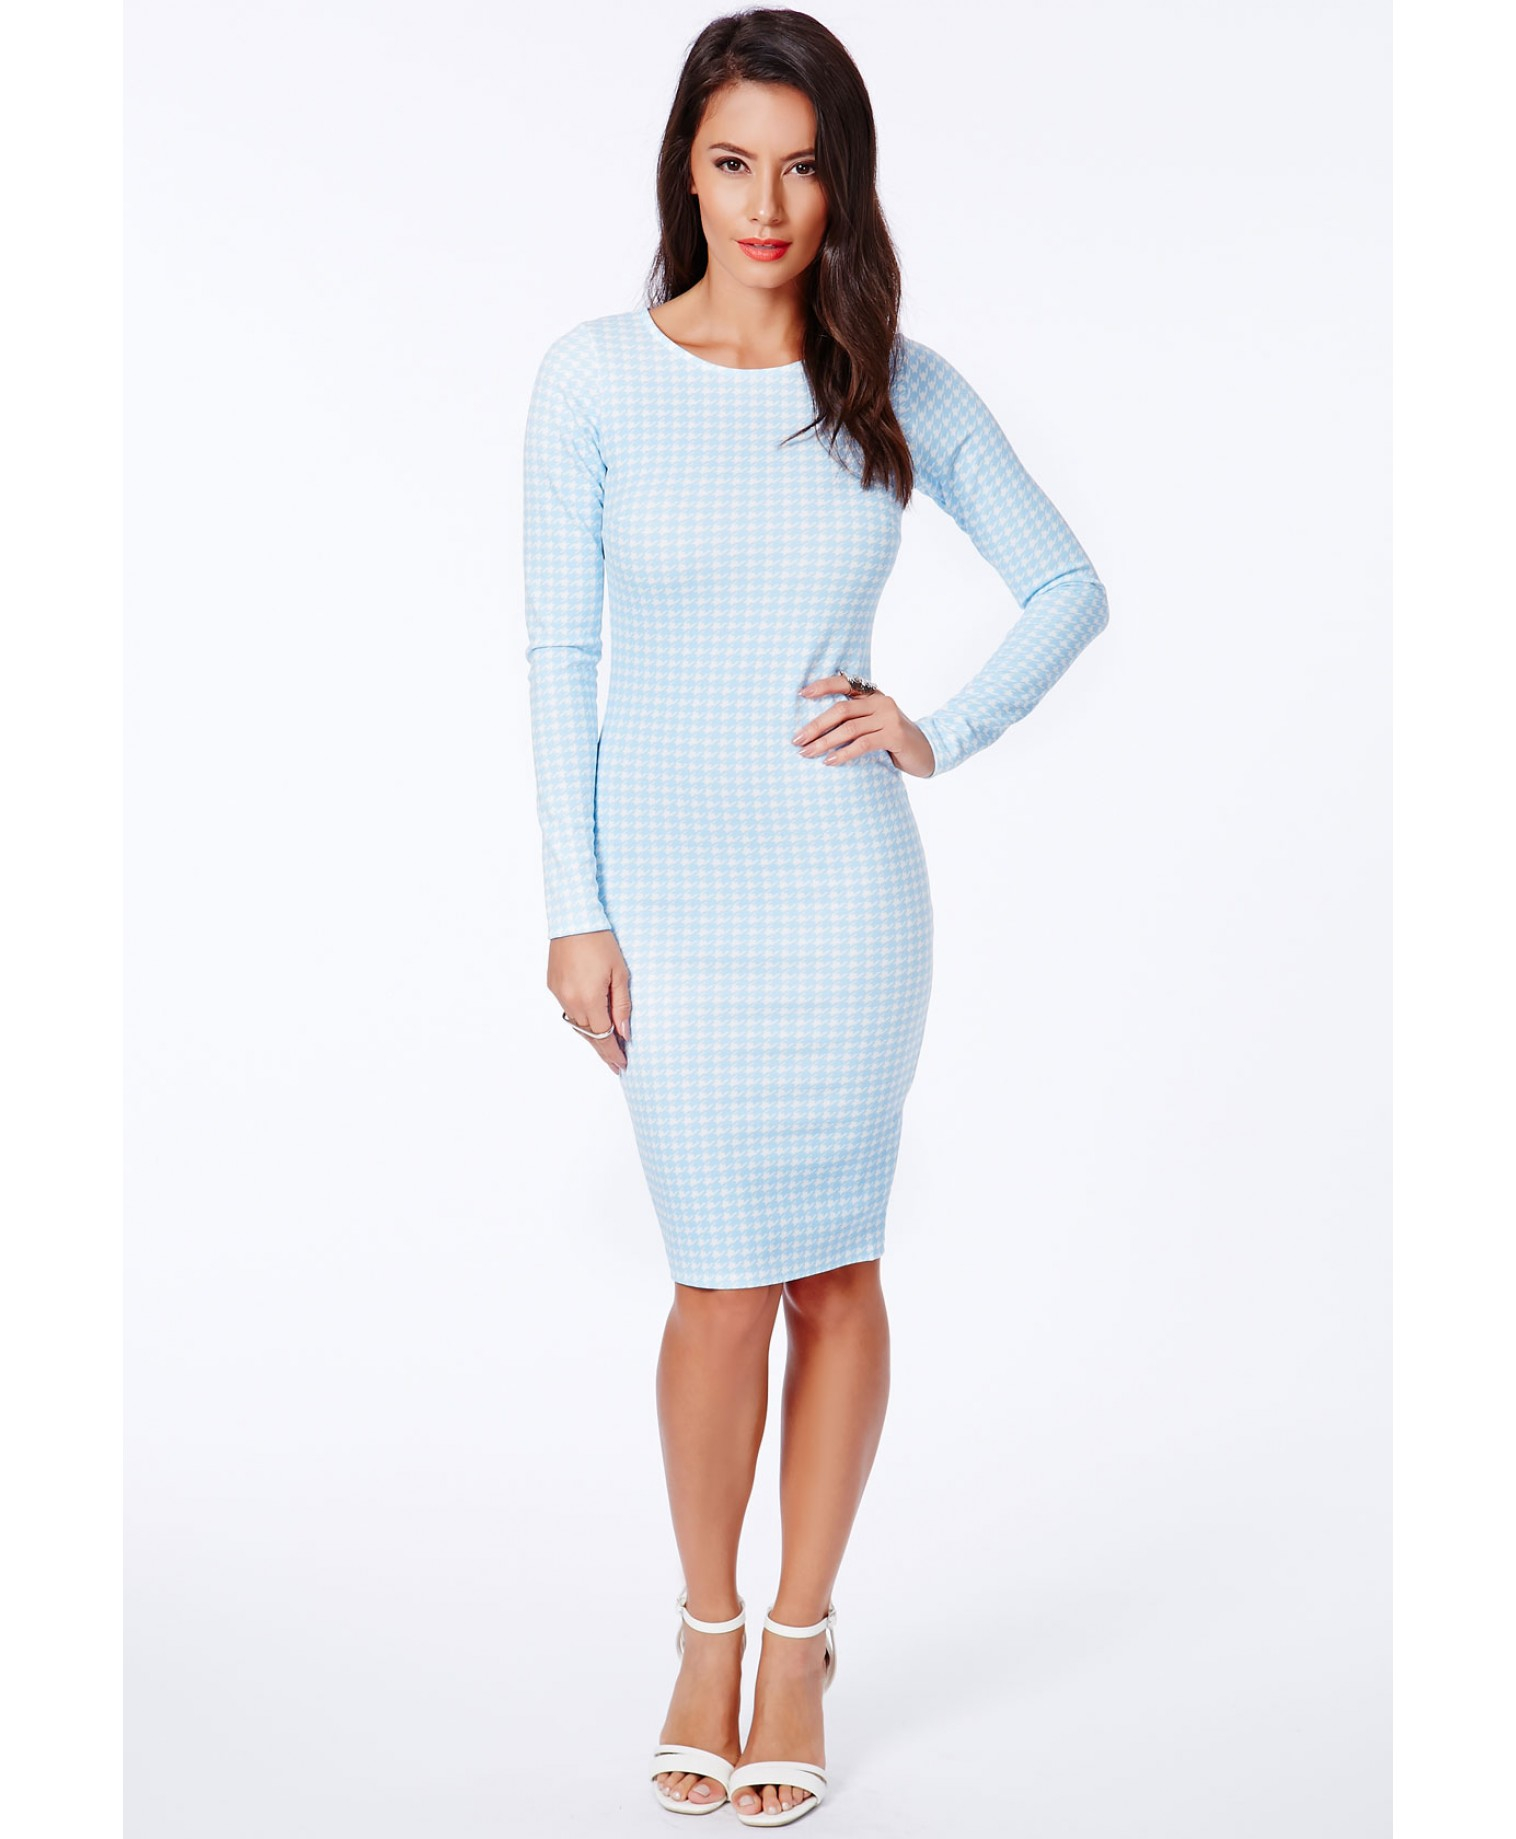 Stephie Baby Blue Crochet Midi Dress. Posted by Mary on 6th Jun I love this dress, is exactly my size and the quality is excellent!!! Customers Who Viewed This Product Also Viewed. Stephie Blush Crochet Midi Dress. $ $ Choose Options. Rebekah Navy-Blue Crochet Midi Dress.